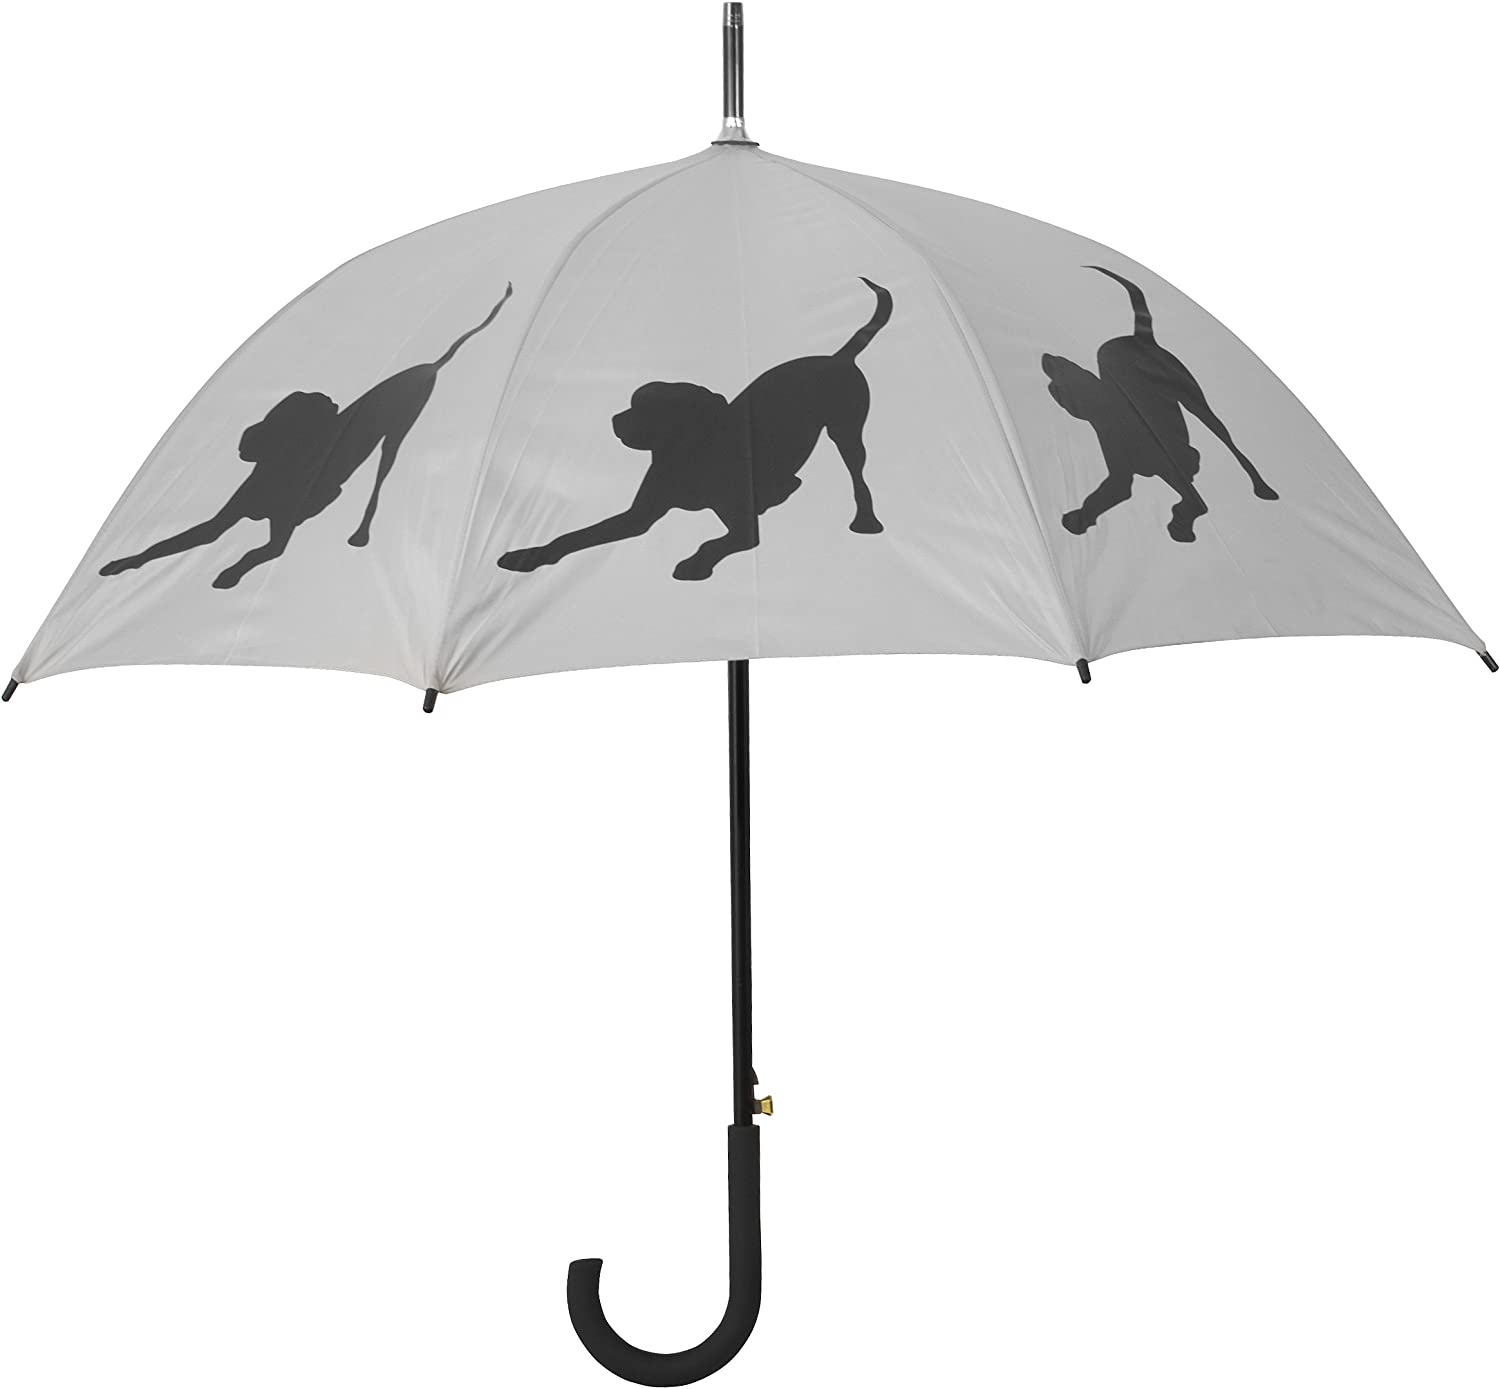 Black//White Cat Umbrella San Francisco Umbrella Co